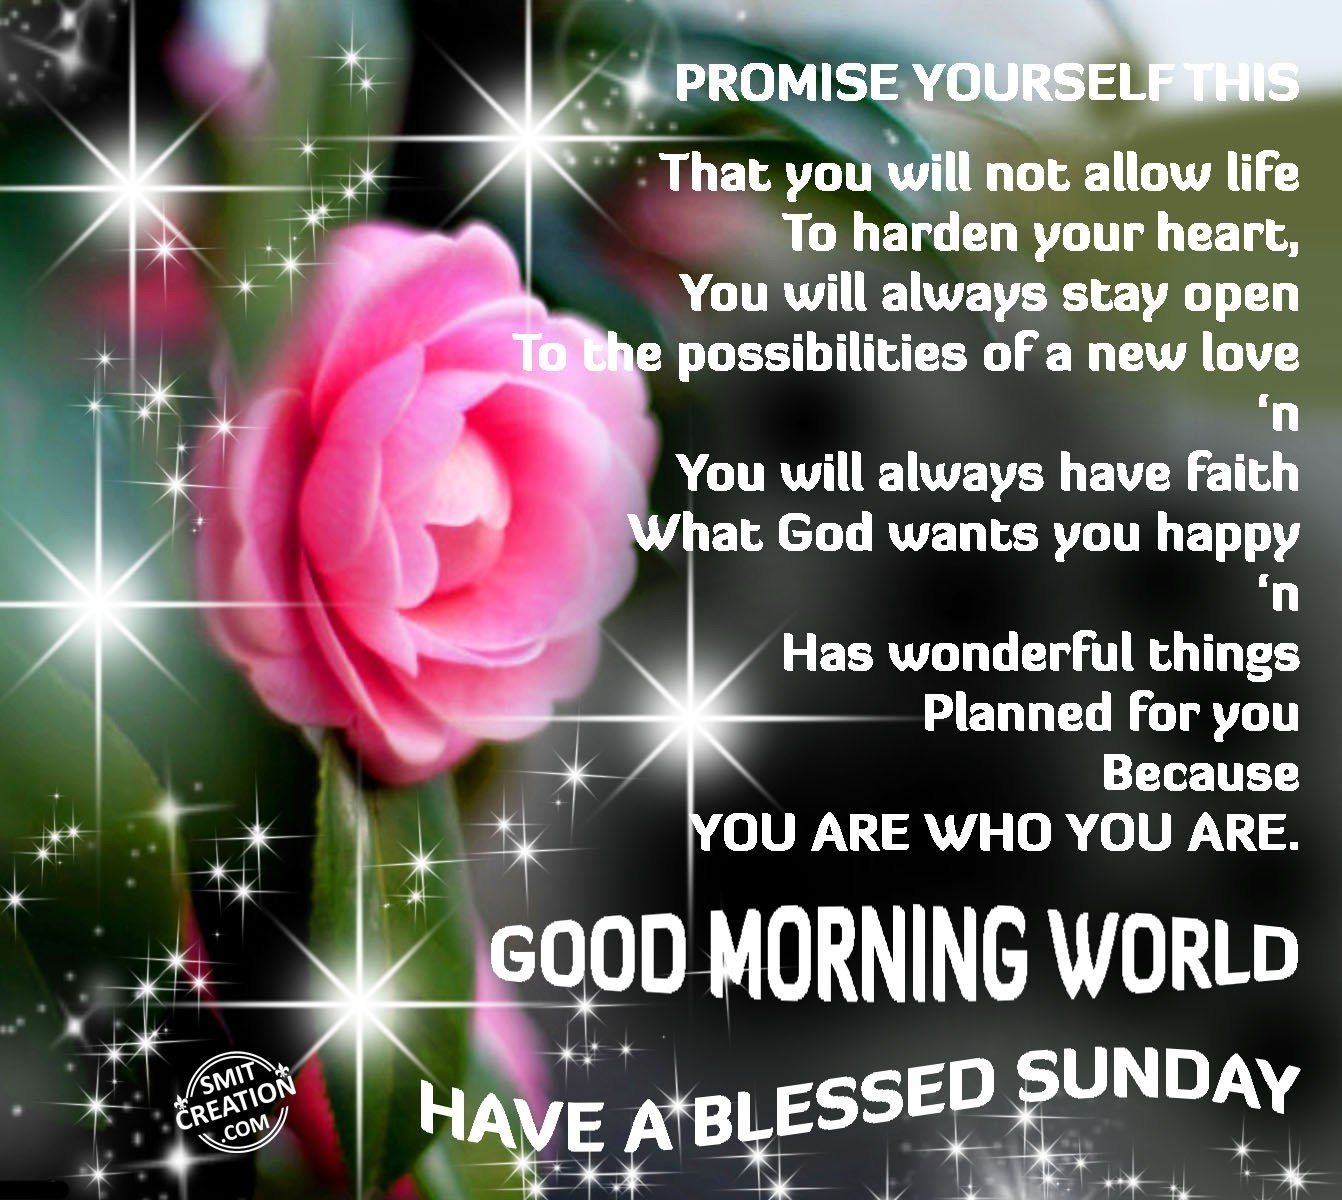 GOOD MORNING WORLD – HAVE A BLESSED SUNDAY SmitCreation Com